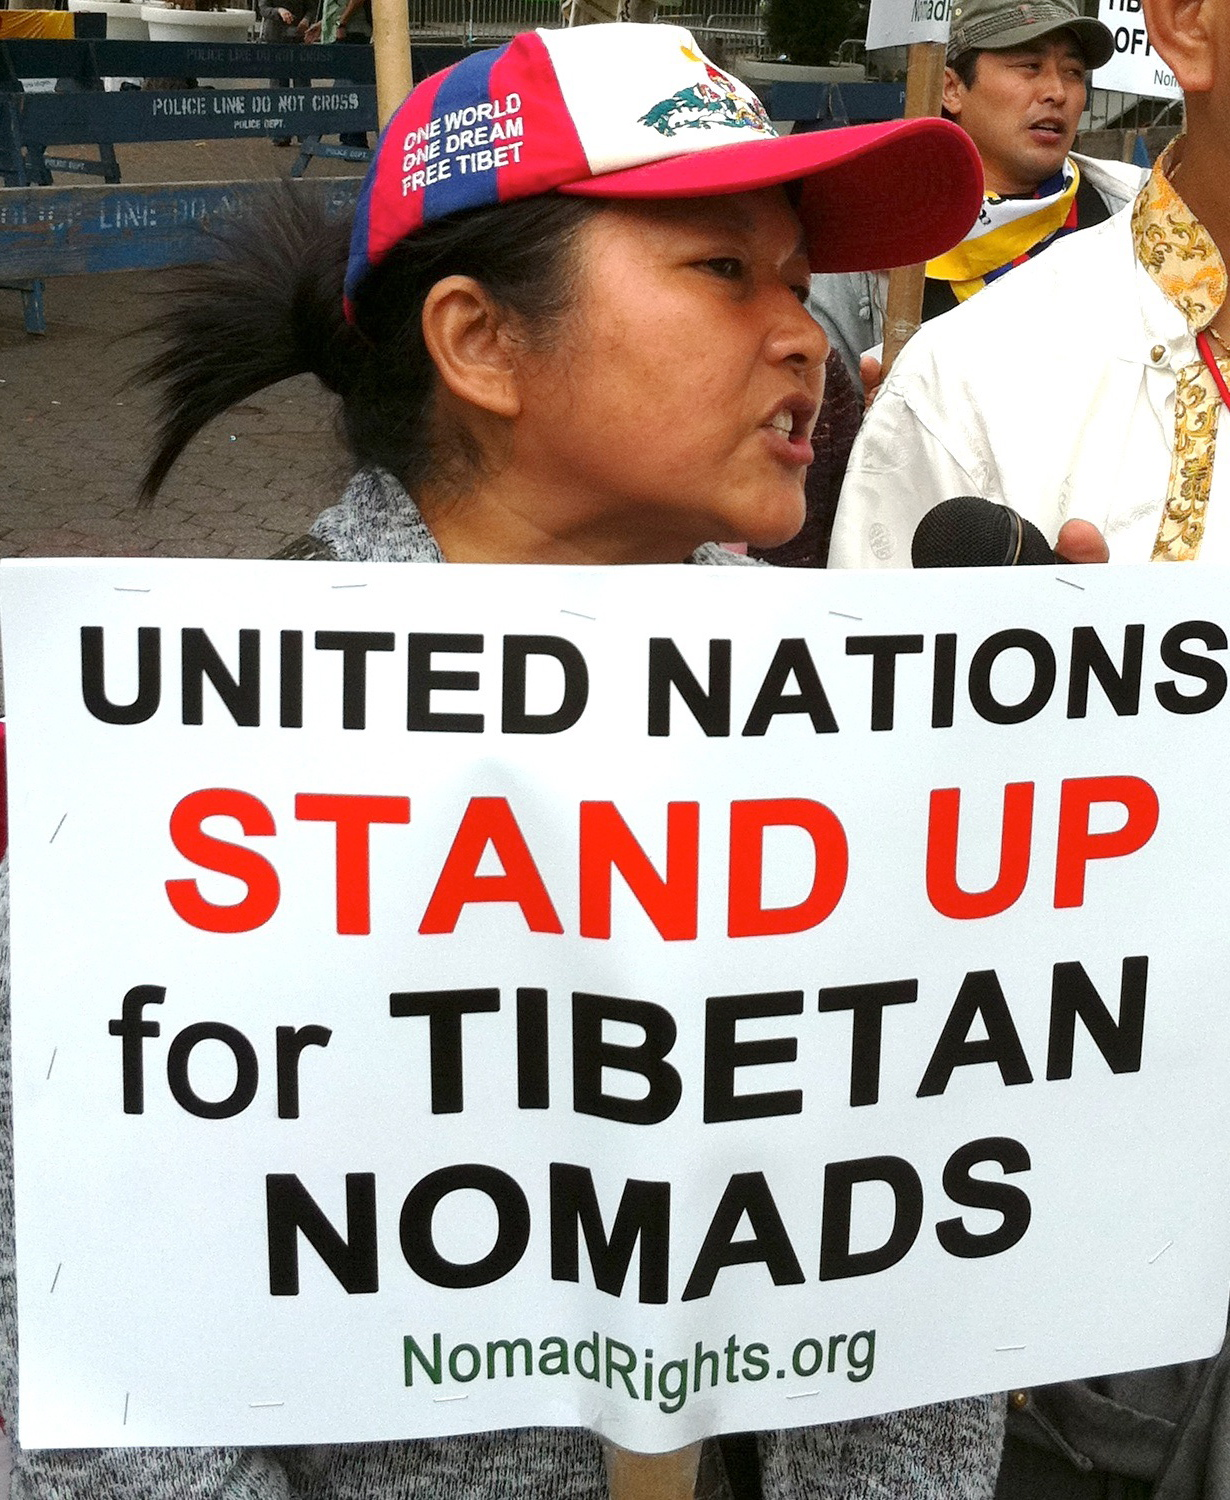 UN Stand Up for Tibetan Nomads